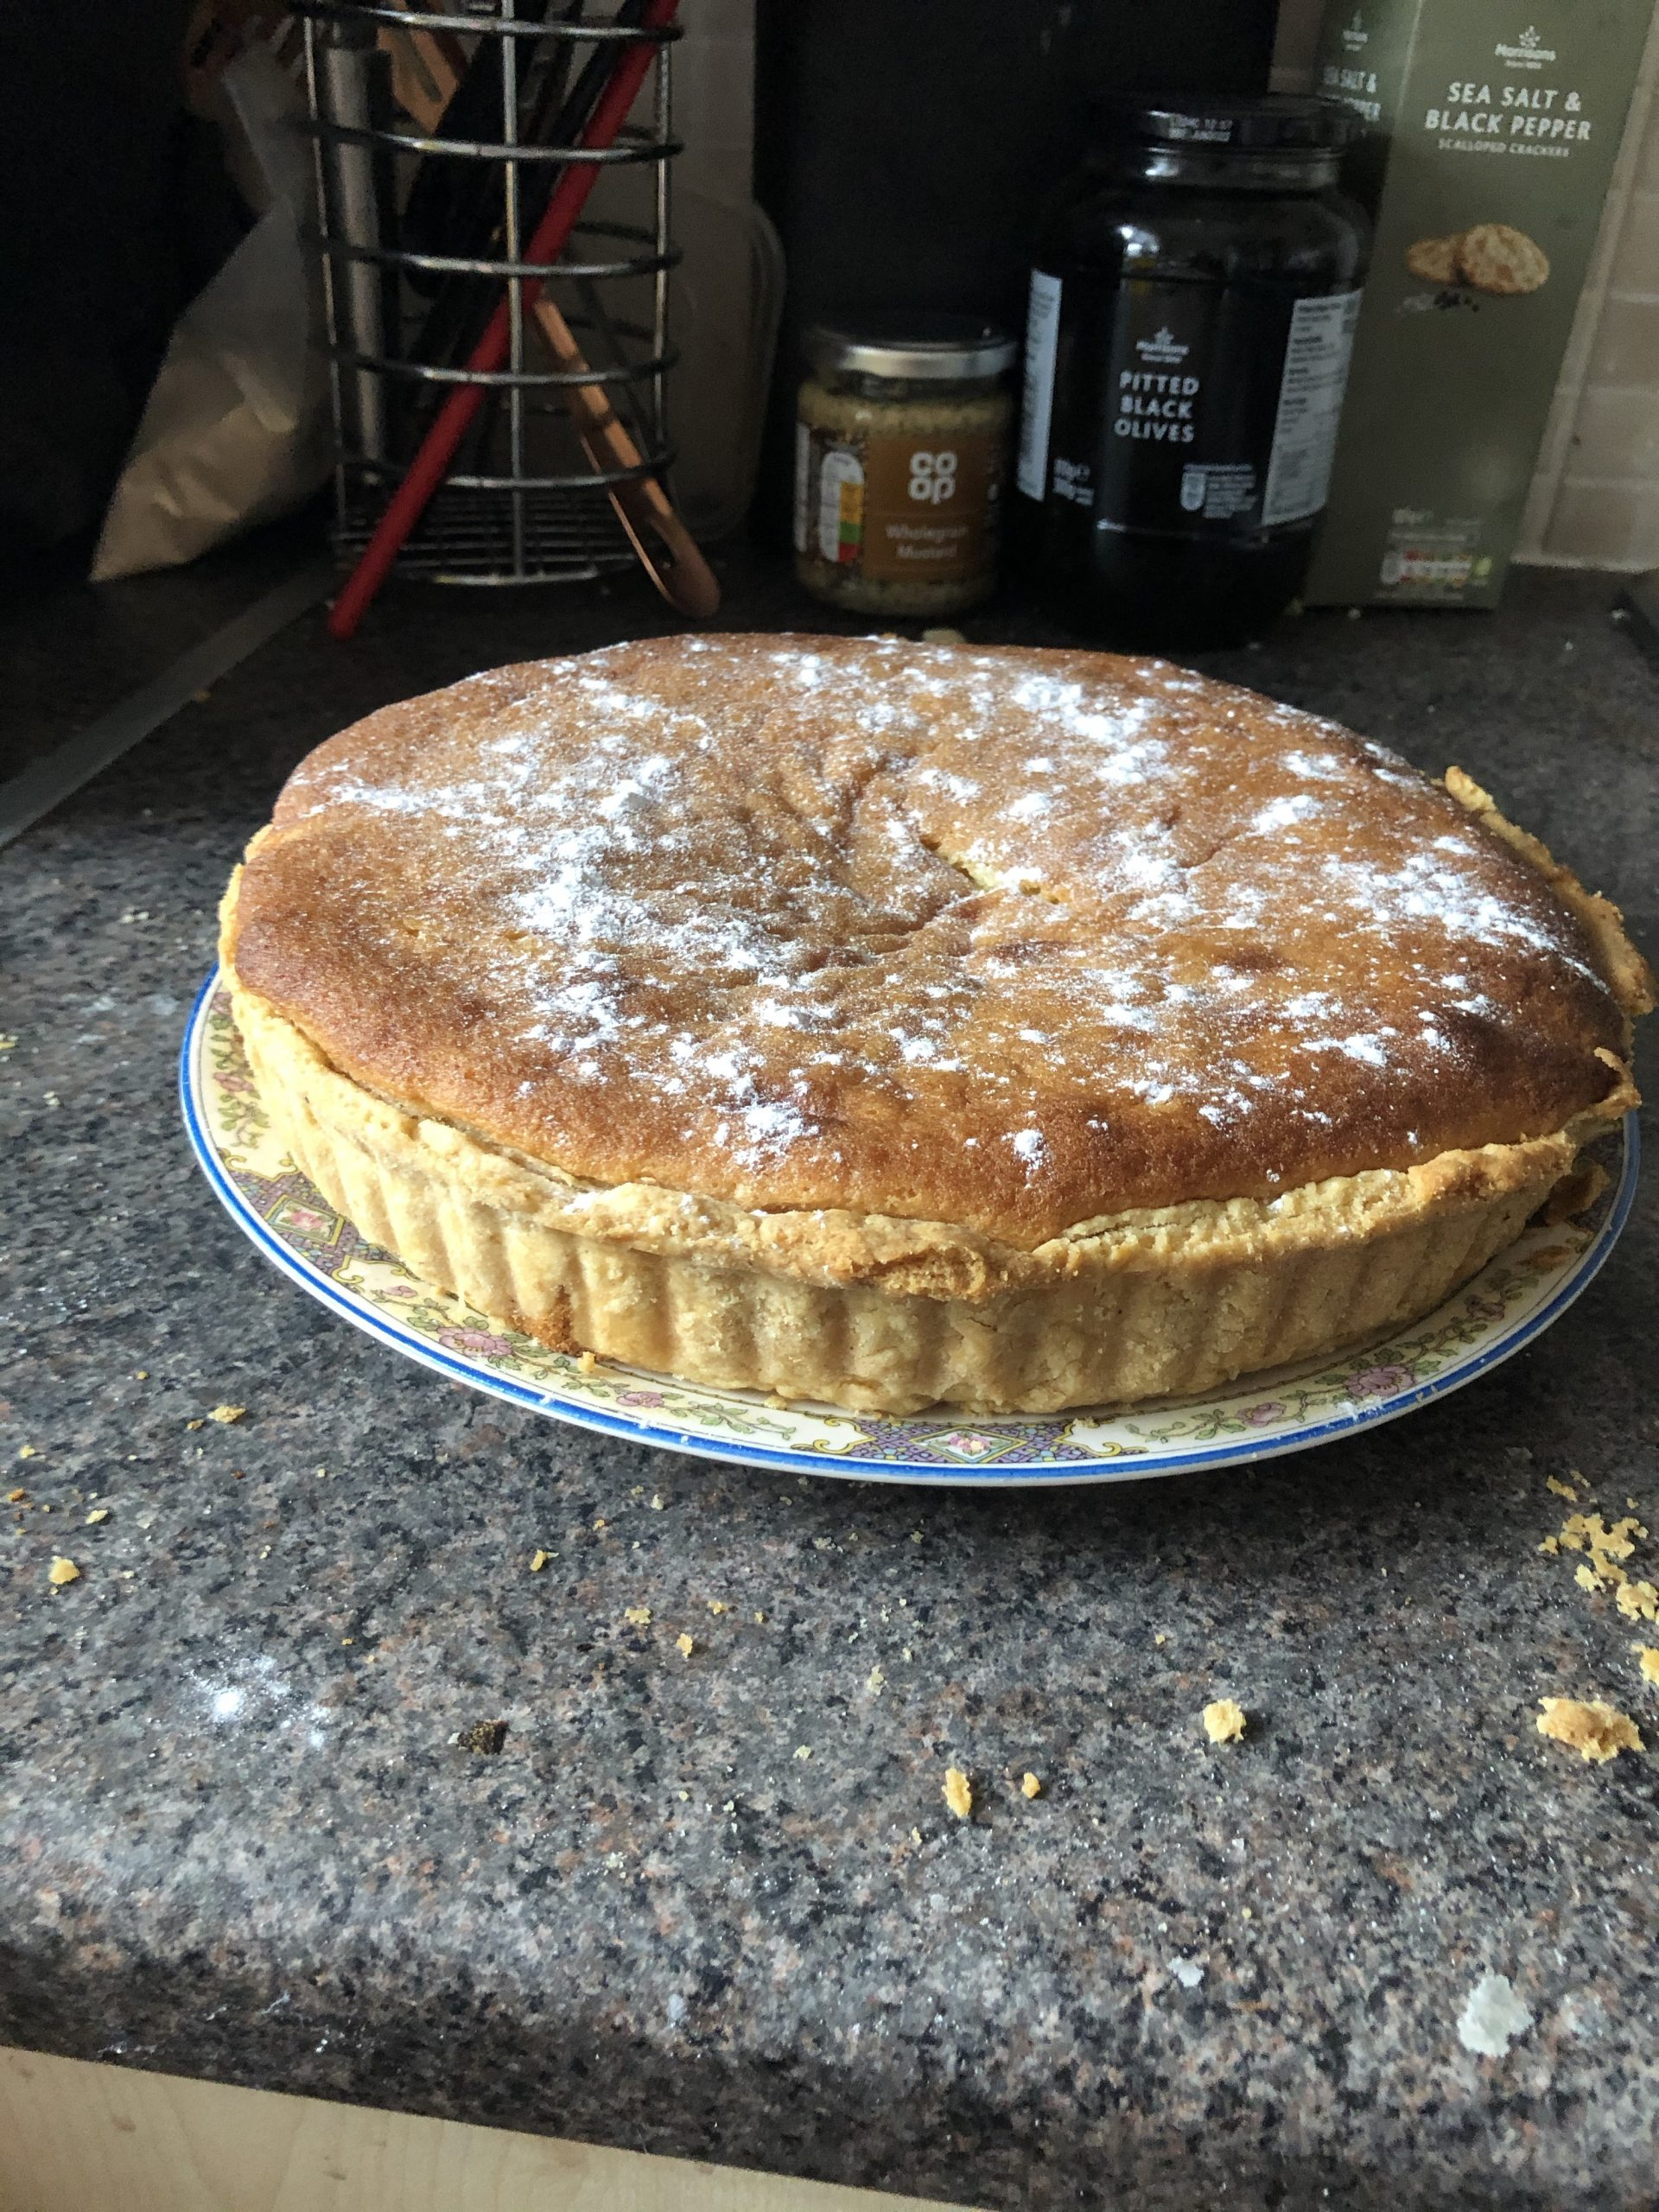 A photo of the delicious Bakewell tart in its entierty, on a white plate sat on a grey worktop.